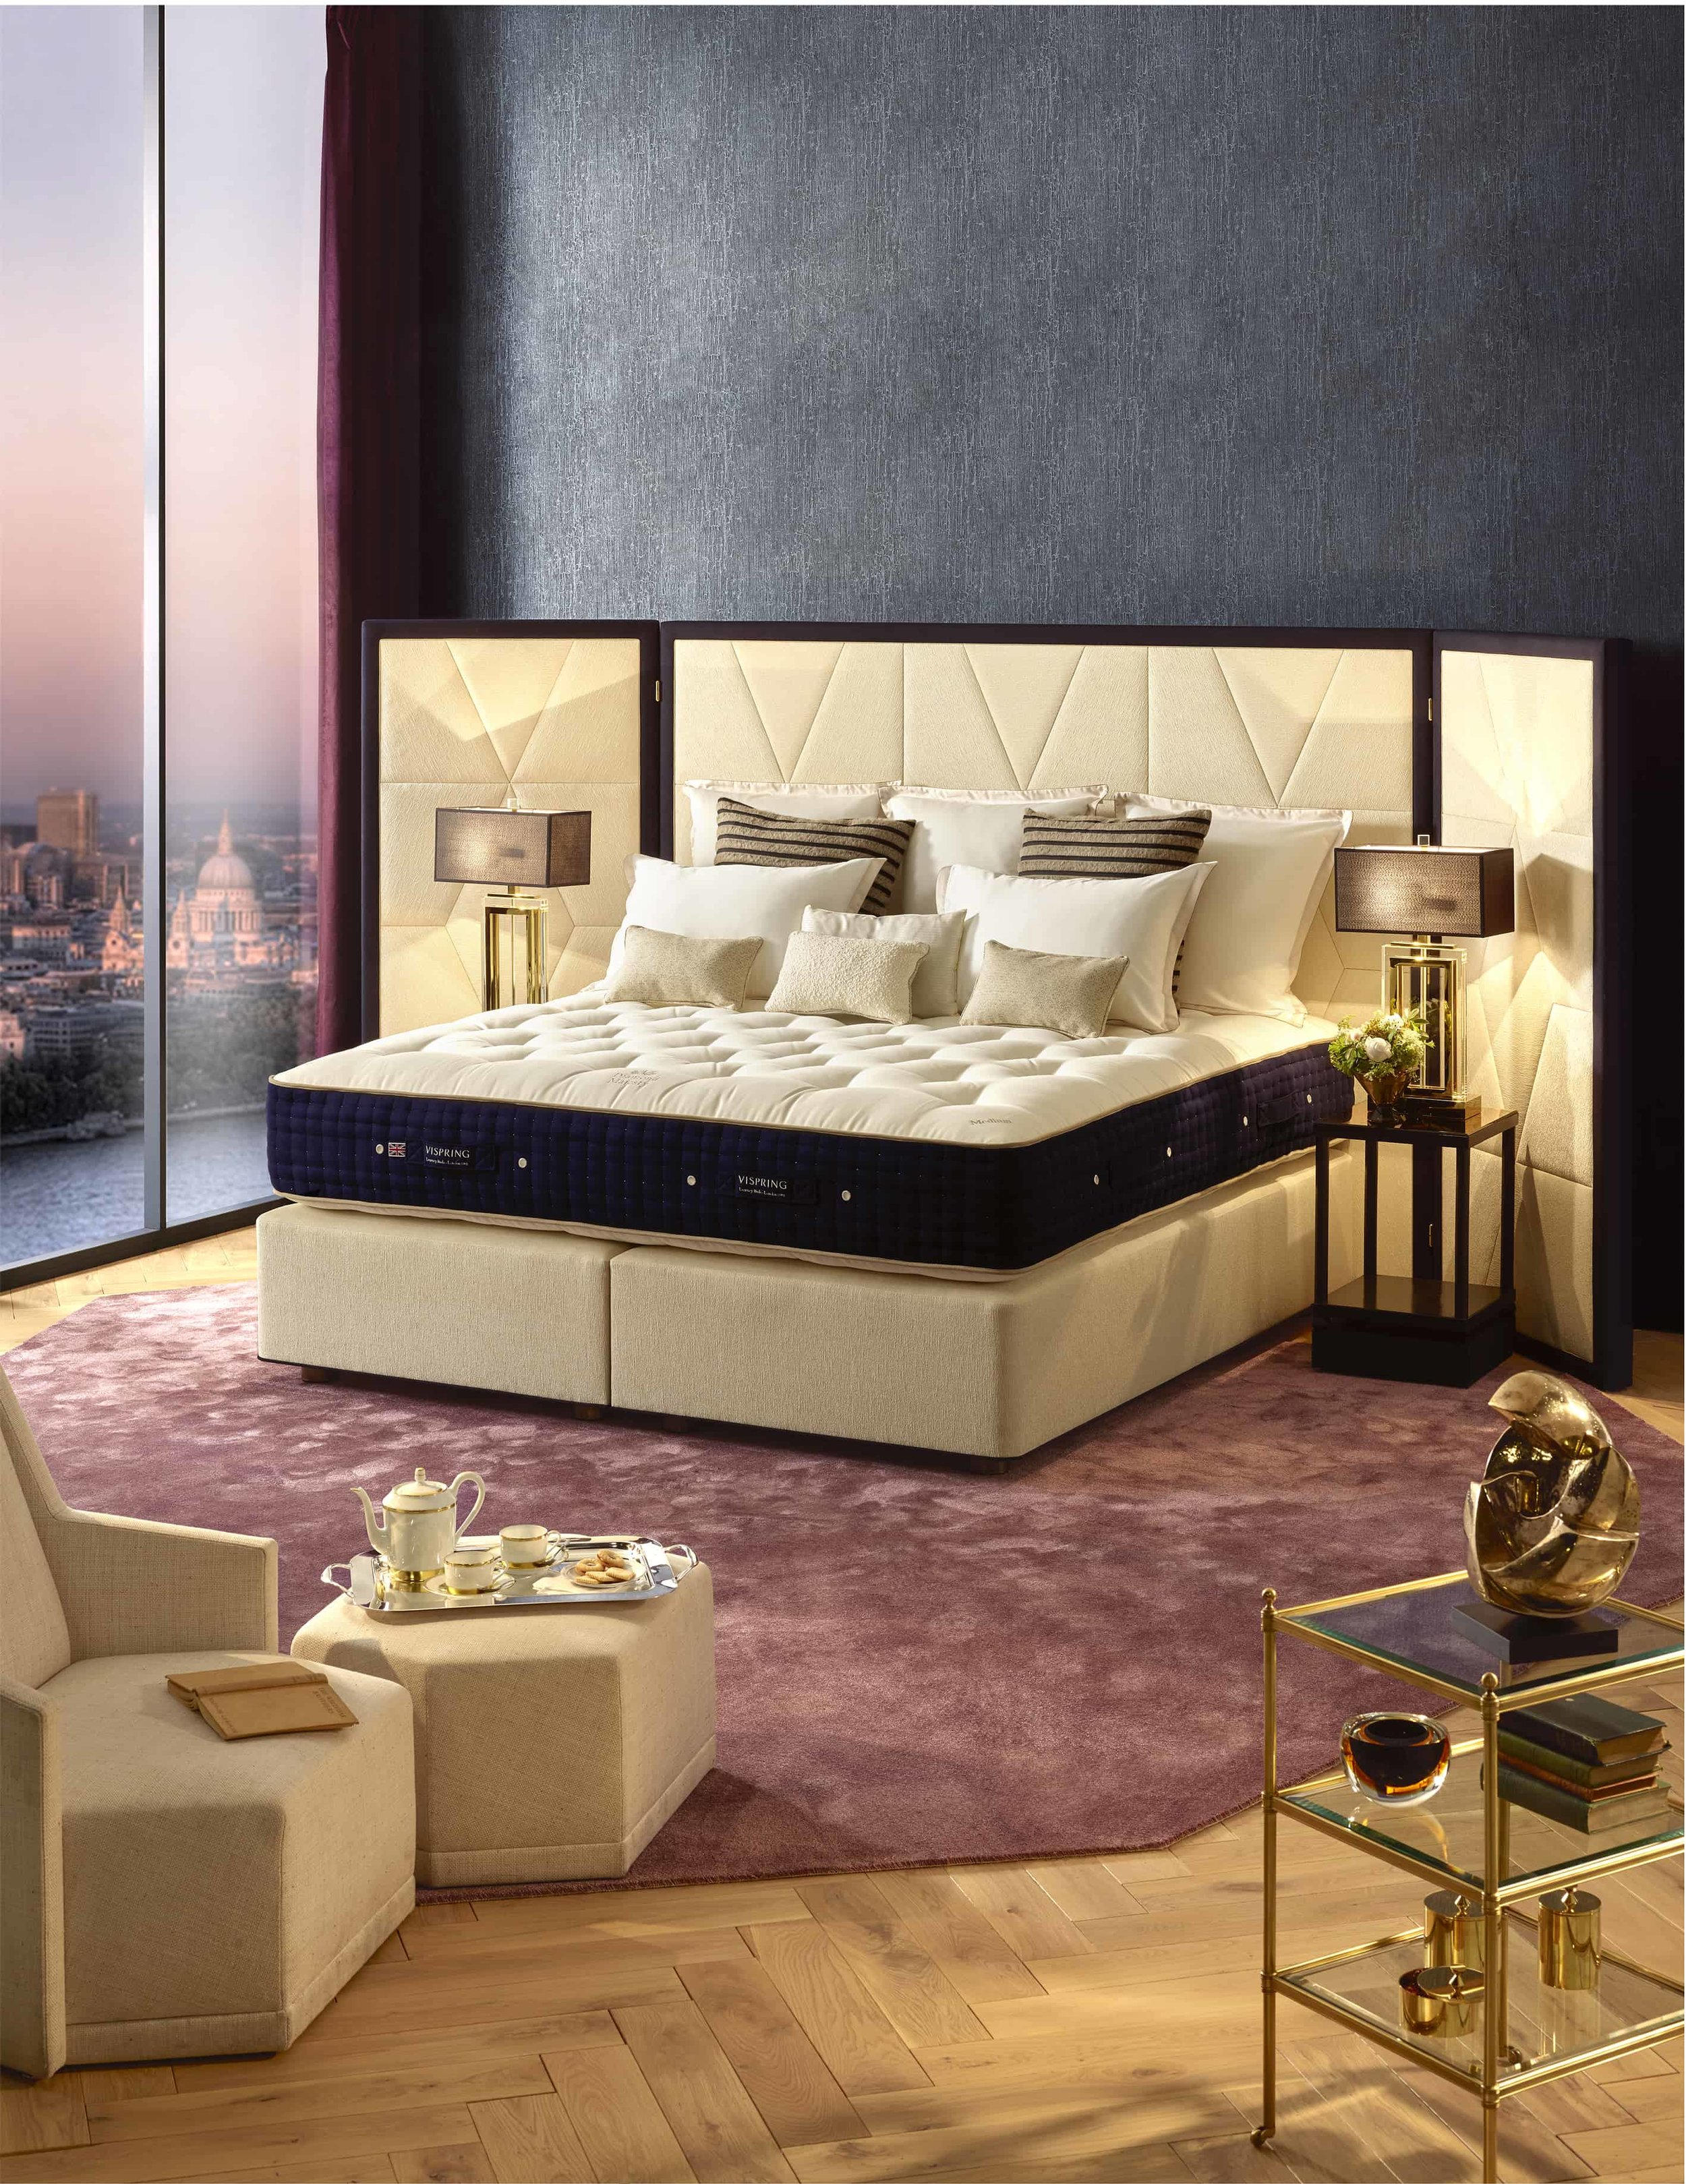 Vispring Diamond Majesty Luxury Mattress